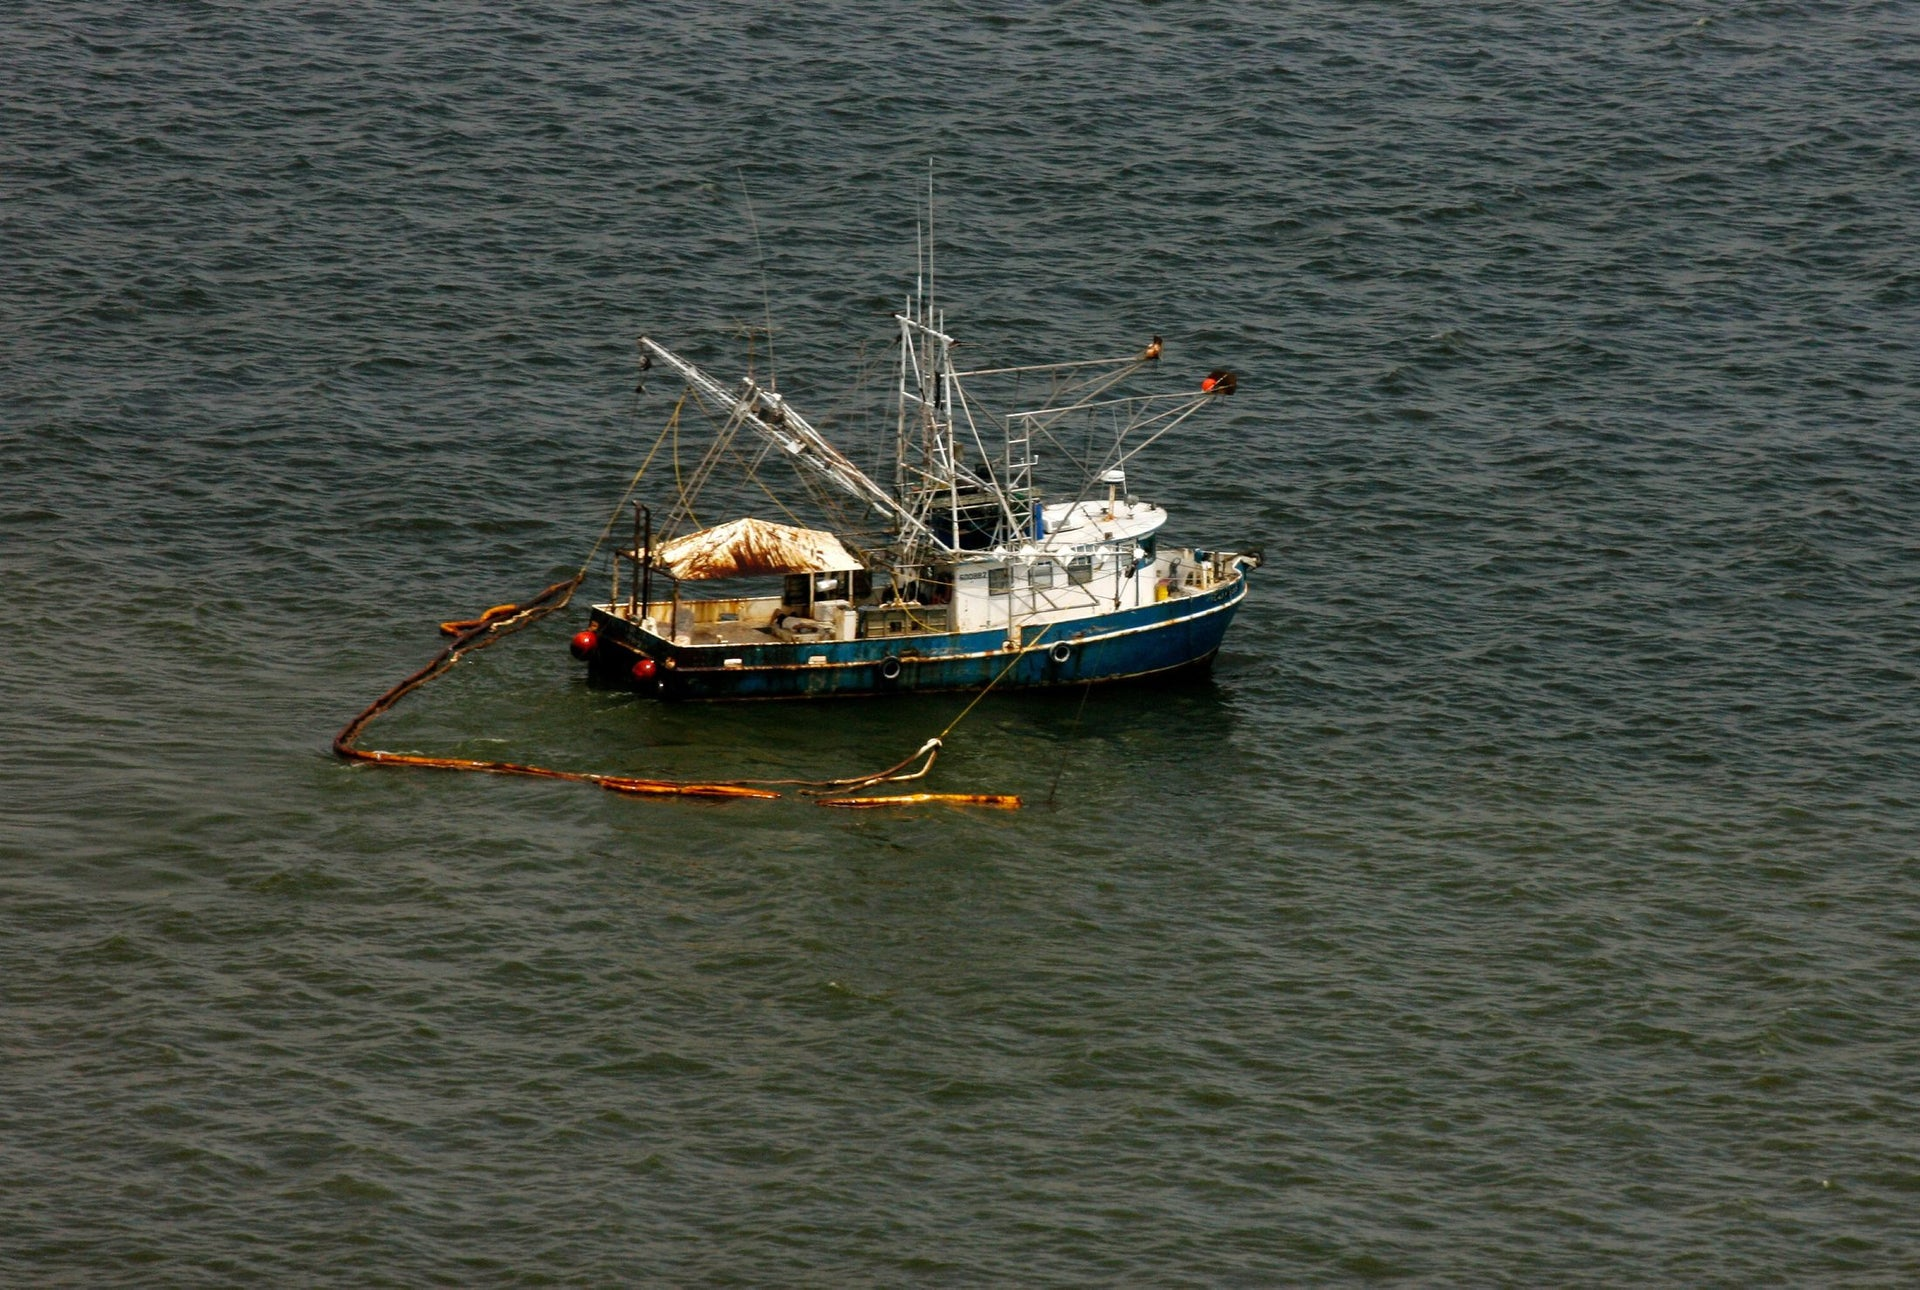 A shrimp boat pulling oil containment booms near Grand Isle, Louisiana, June 5, 2010. Fishermen say the amount of shrimp in the Gulf dropped by more than 35 percent after the Deepwater Horizon oil spill.